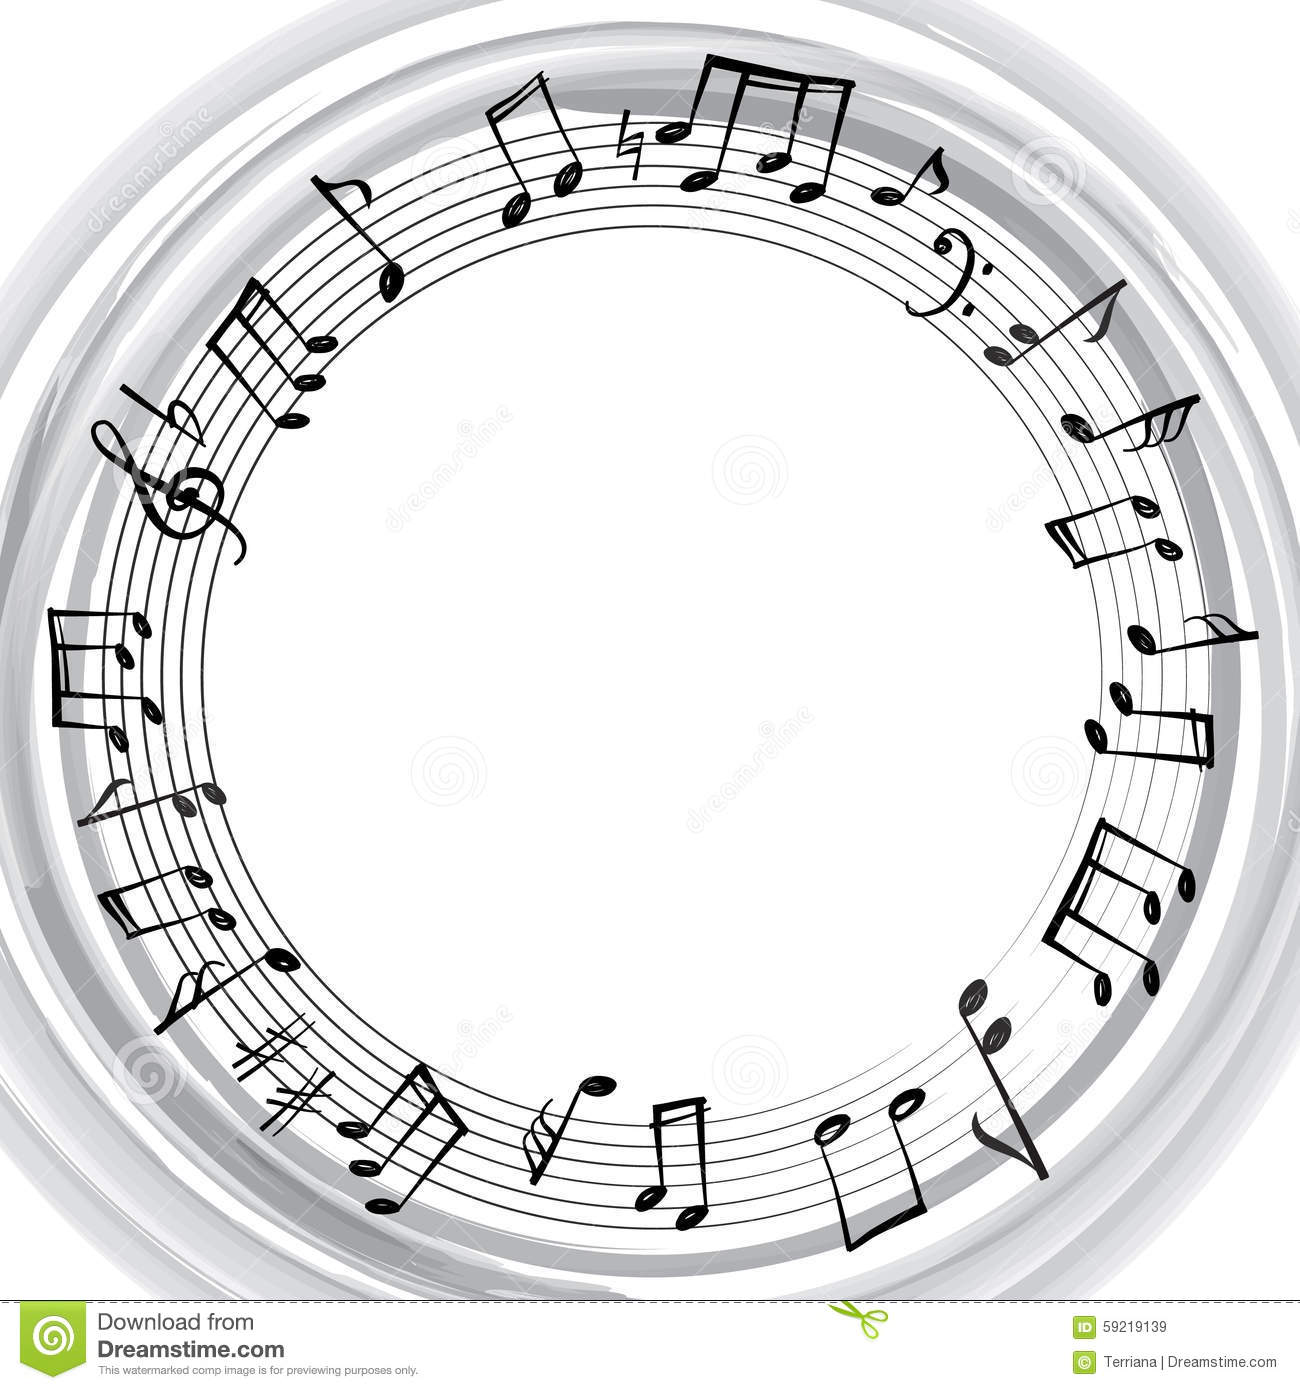 music notes border musical background music round shape frame stock illustration image 59219139. Black Bedroom Furniture Sets. Home Design Ideas